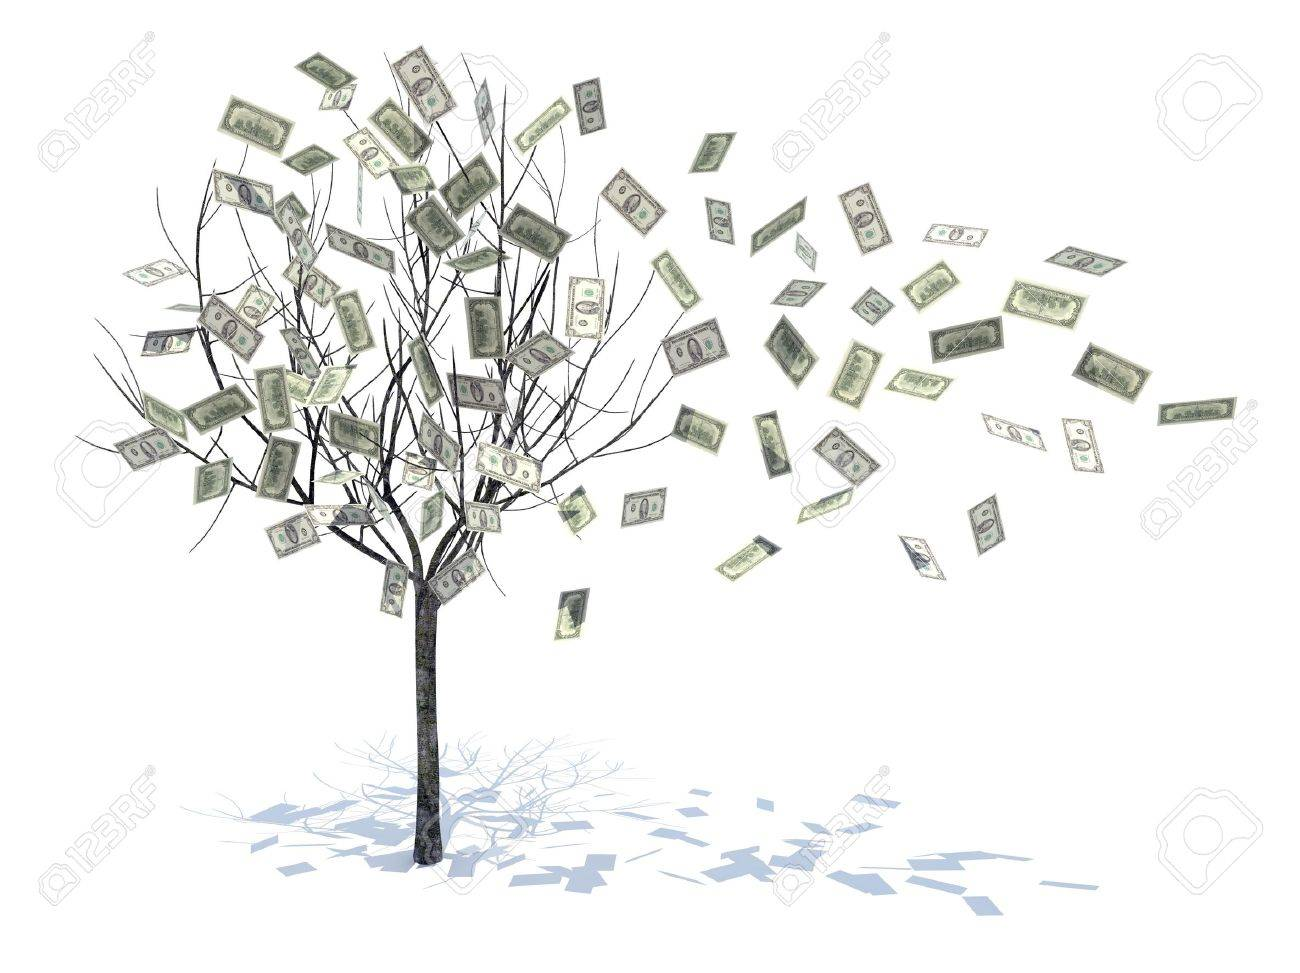 tree with leaves falling notes 3d illustration Stock Illustration - 9856805